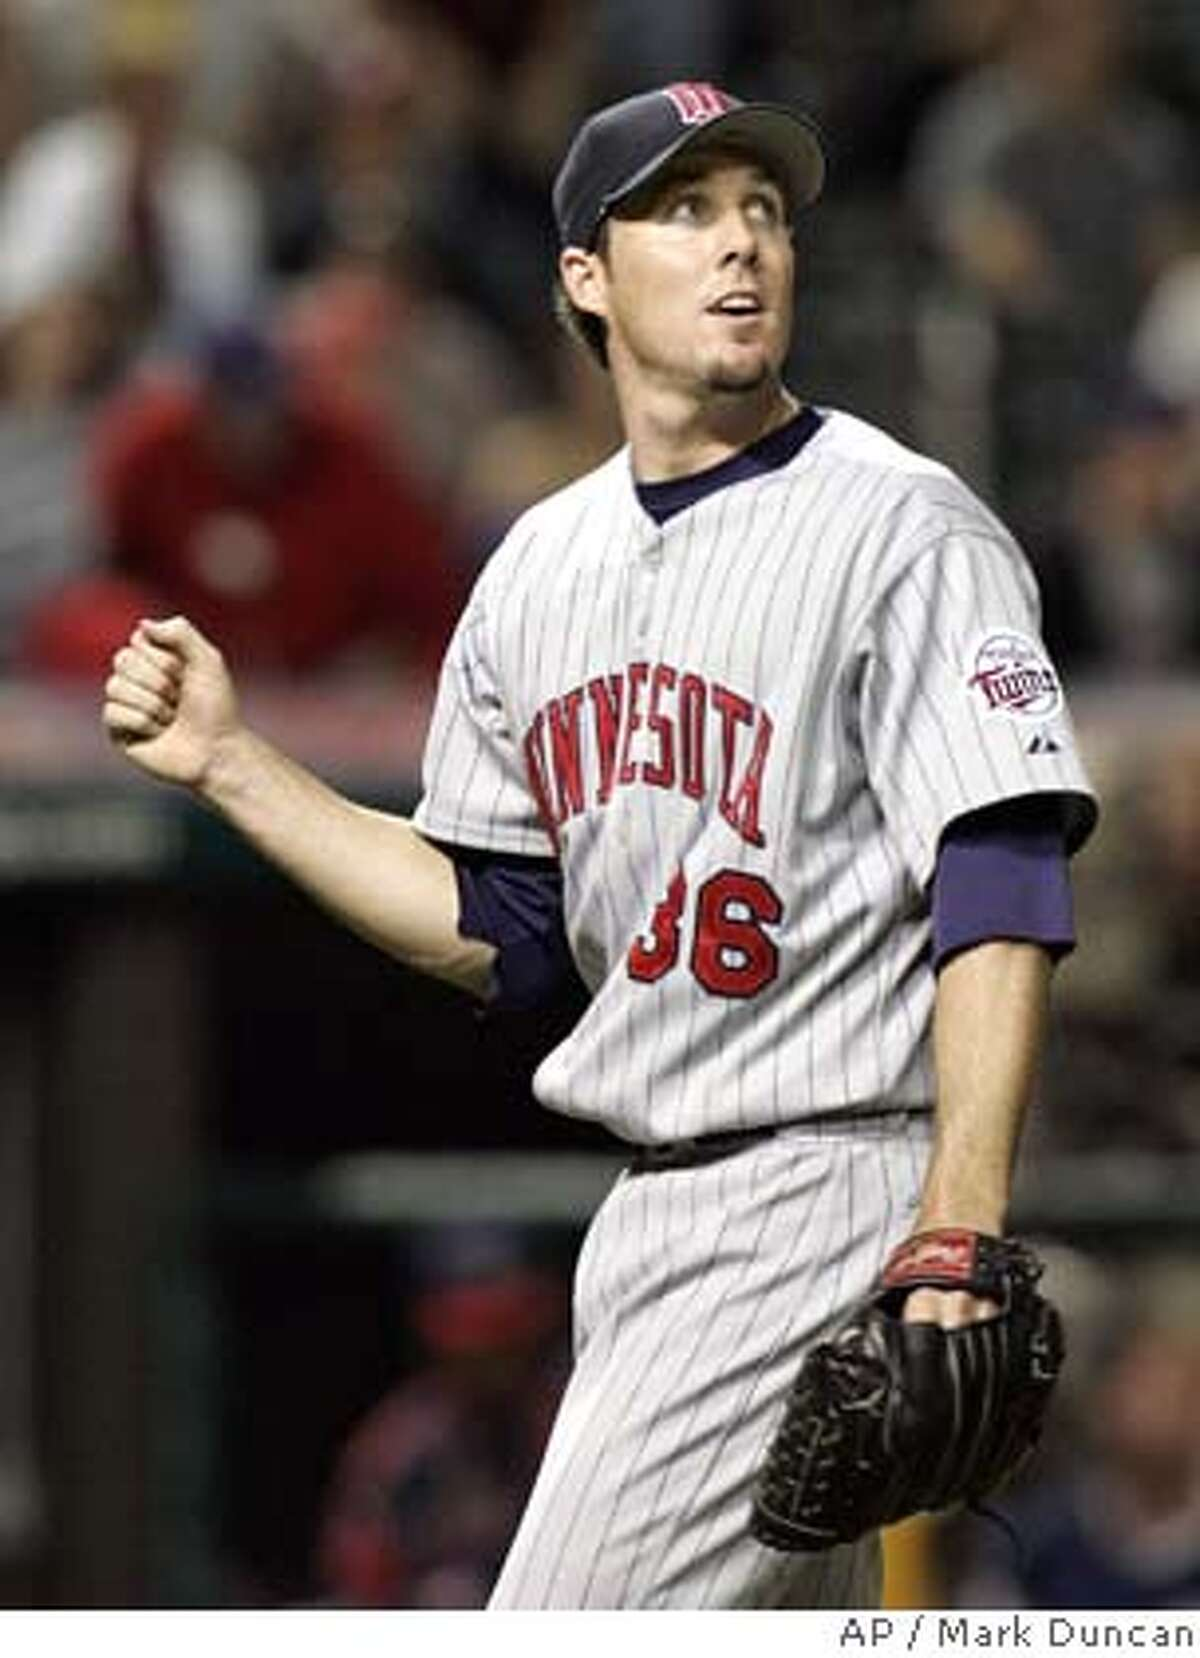 Minnesota Twins closer Joe Nathan starts to celebrate as Cleveland Indians' Jody Gerut's fly ball is caught in right field giving the Twins a 5-4 win in 11 innings Thursday, May 26, 2005, in Cleveland. (AP Photo/Mark Duncan) Ran on: 06-05-2005 Former Giant Joe Nathan is one of baseballs few consistent closers this year, but even Minnesotas stopper wont take it for granted.